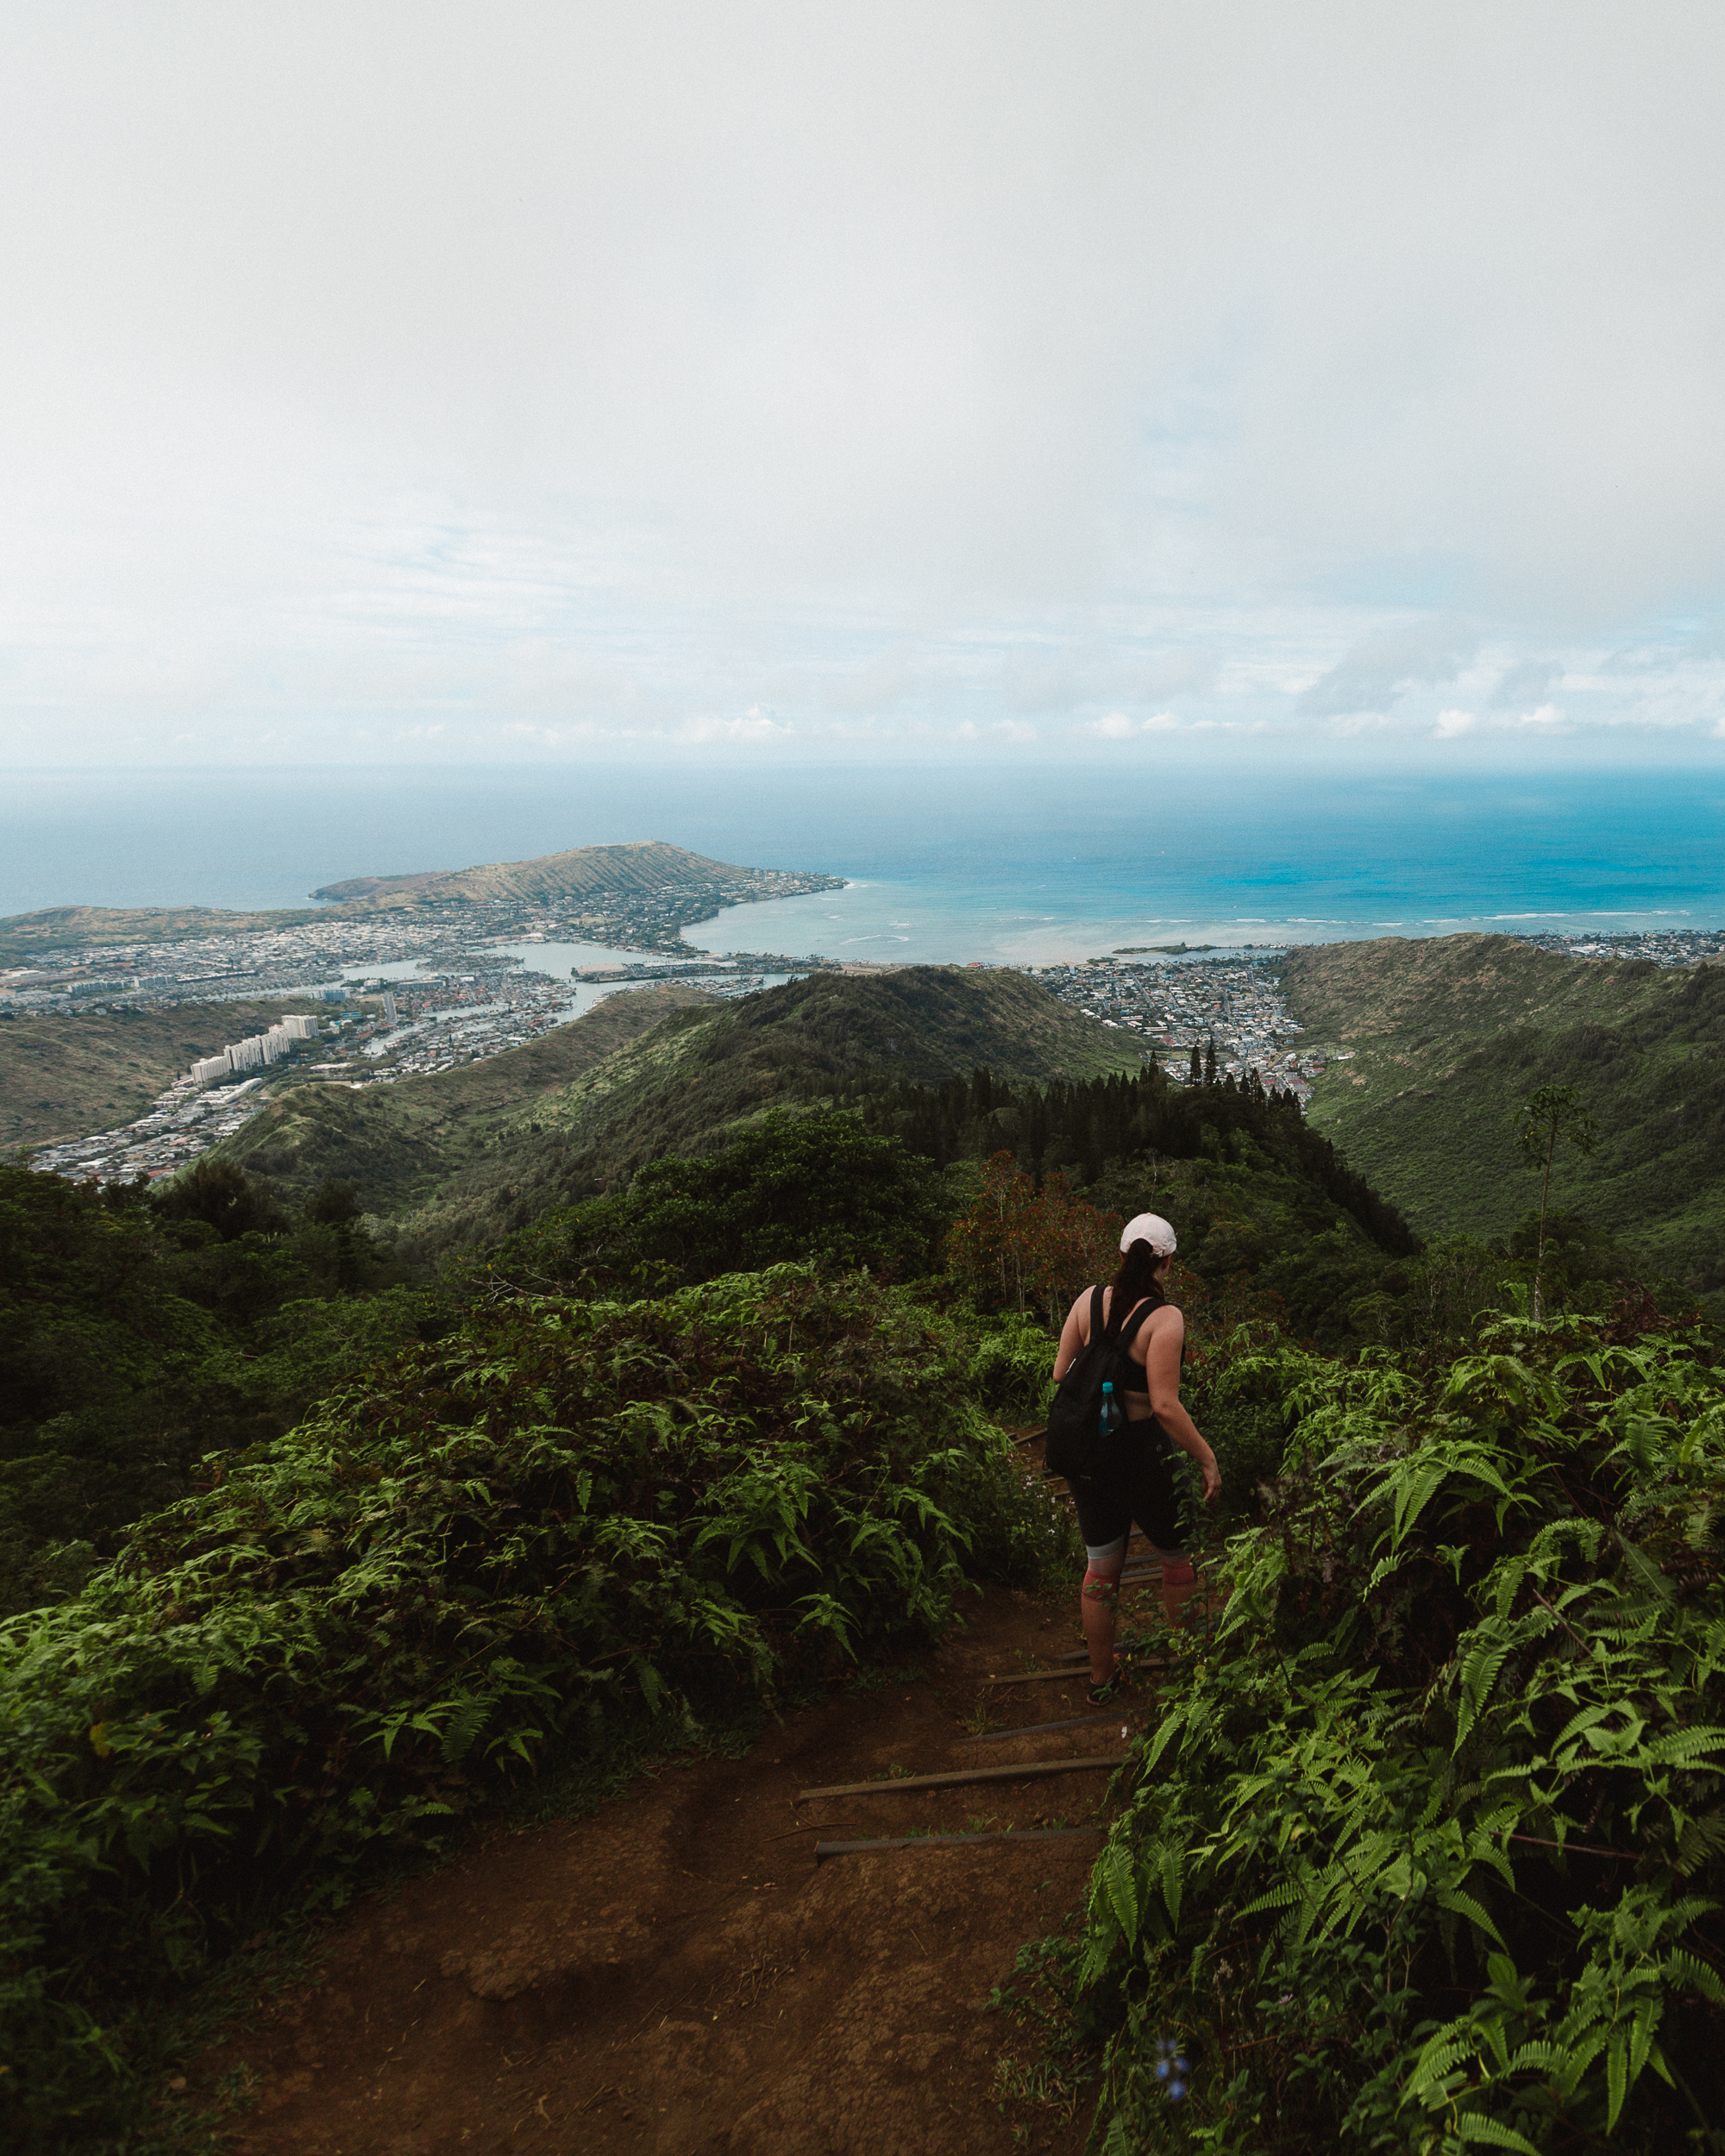 Stairs descending down into the valley overlooking Hanauma Bay on the south west side of O'ahu.